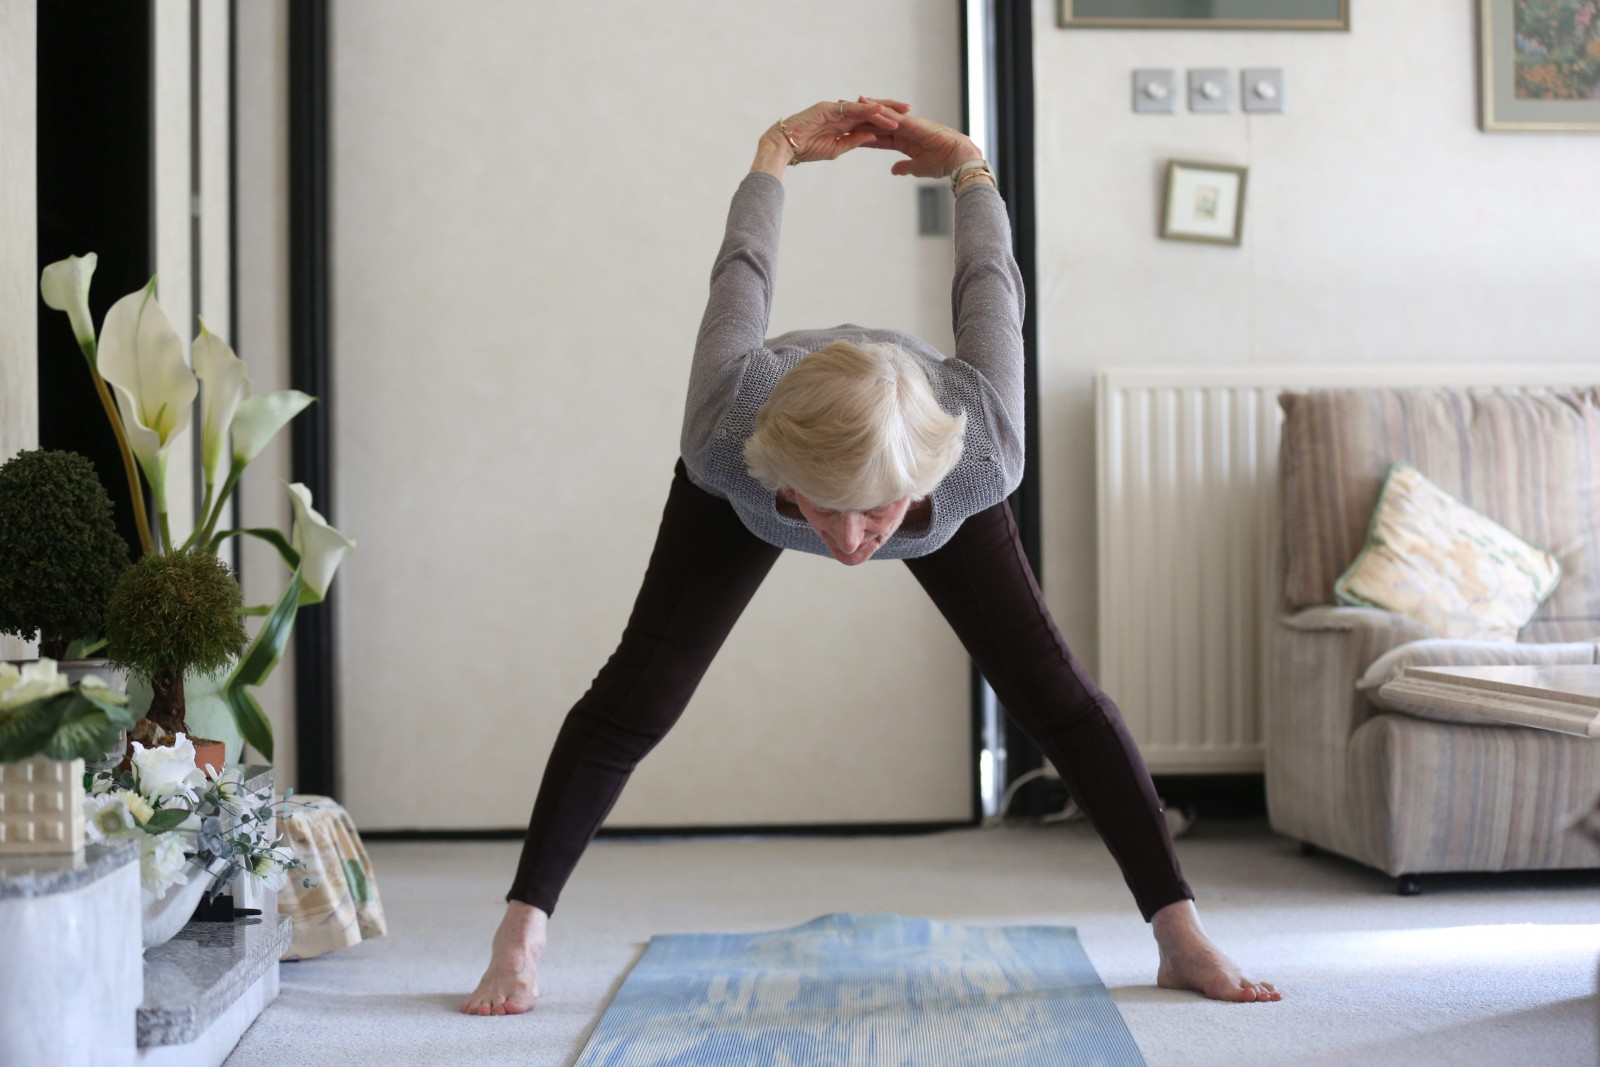 You'll never guess how old this yoga instructor is!